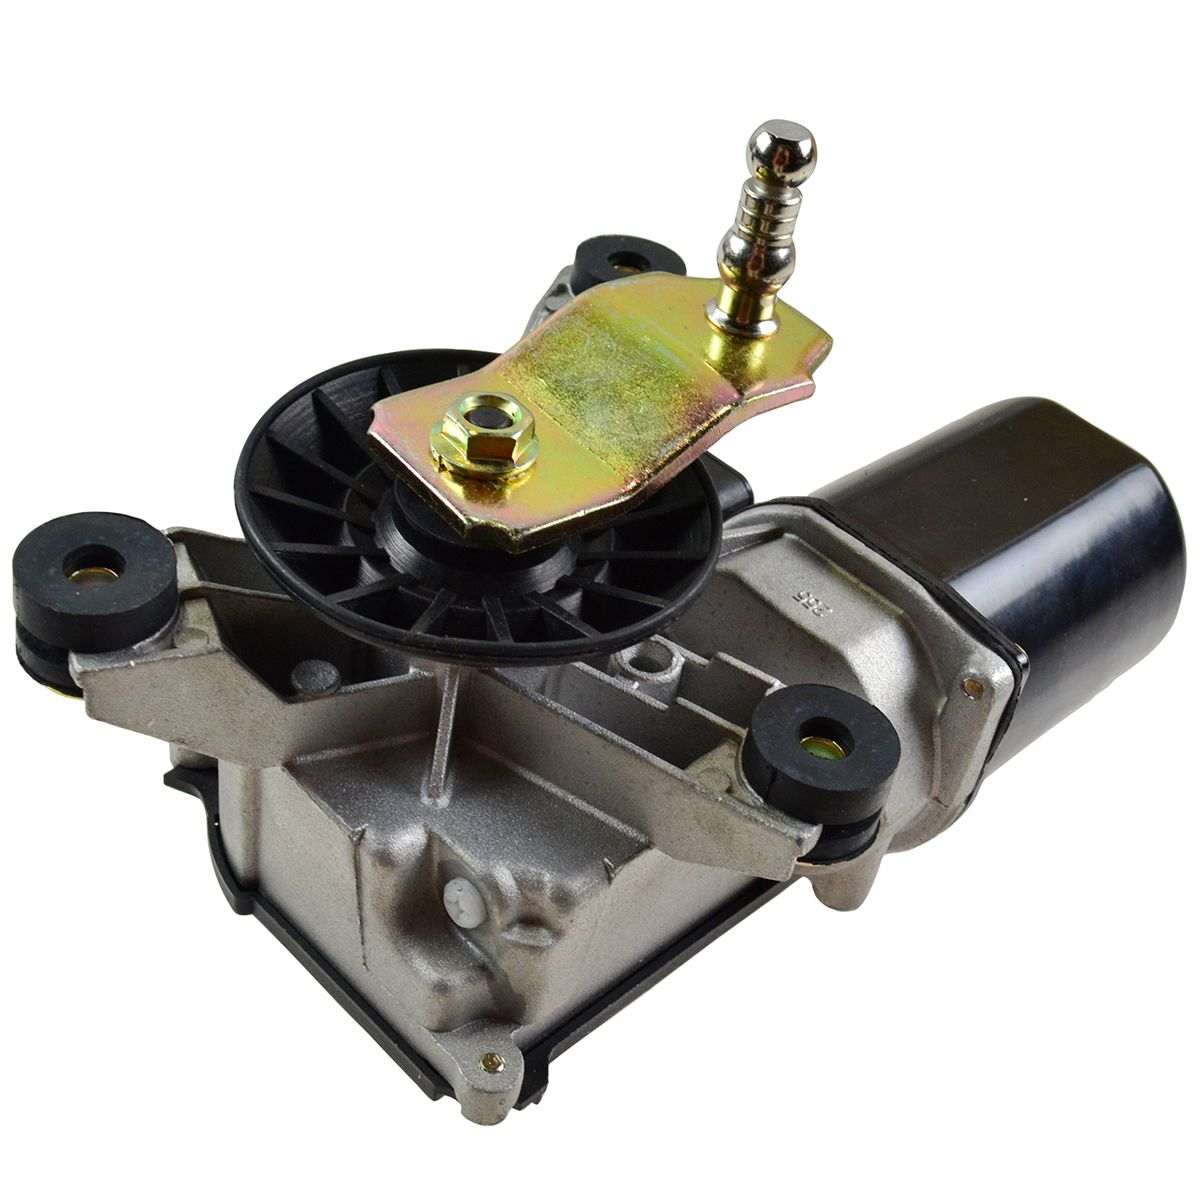 Windshield wiper motor for chevy gmc cadillac isuzu Windshield wiper motor repair cost